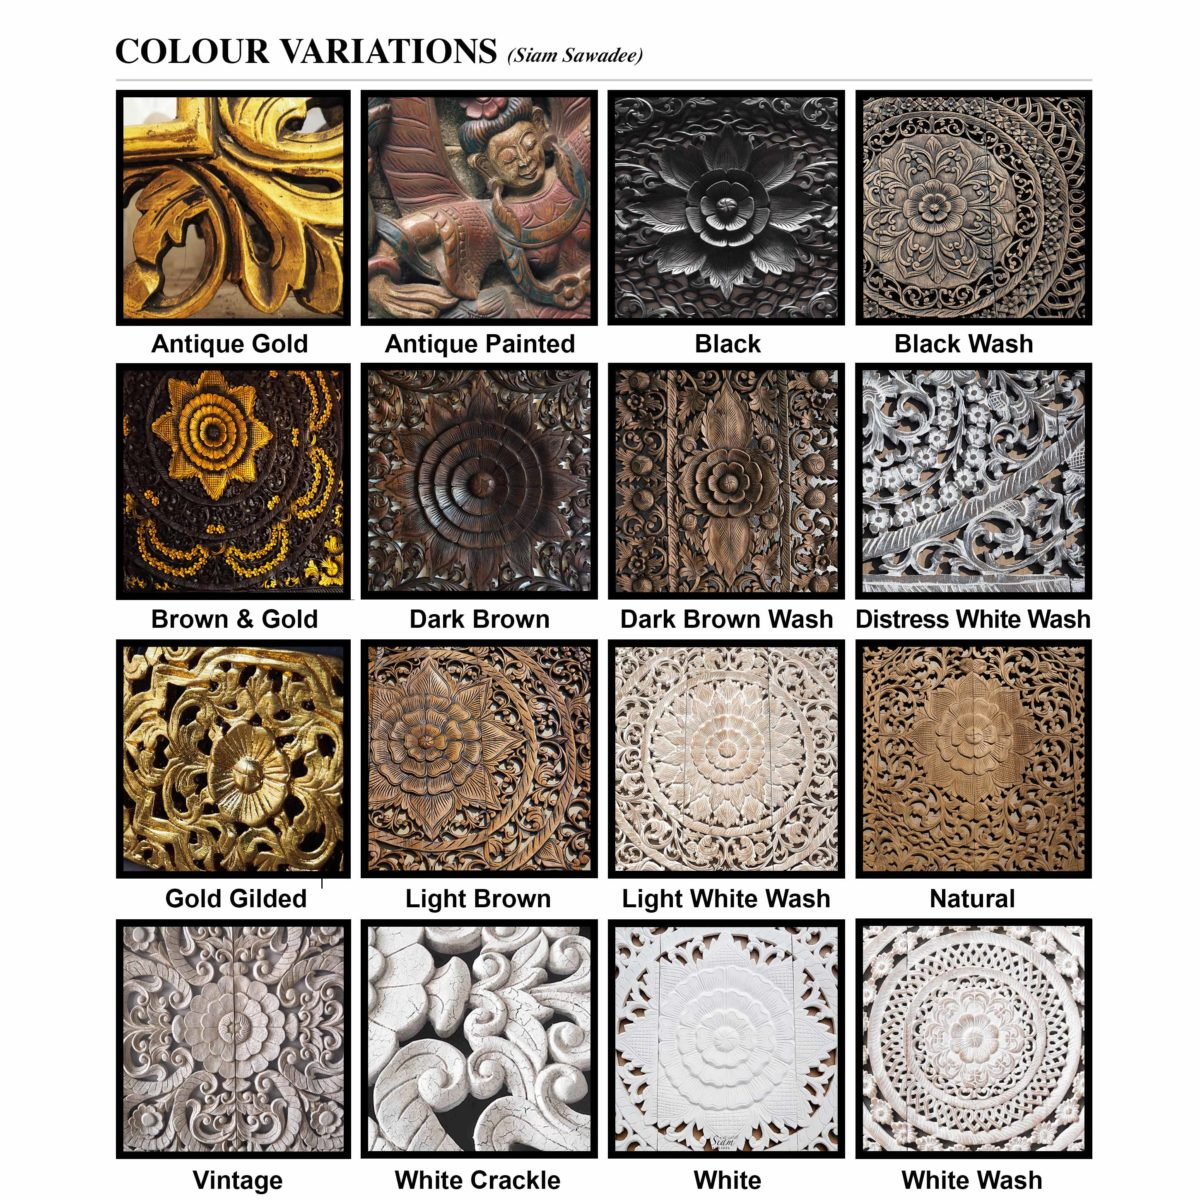 Colour variations 1200x1200 - Mandala Wood Carving Wall Art Paneling